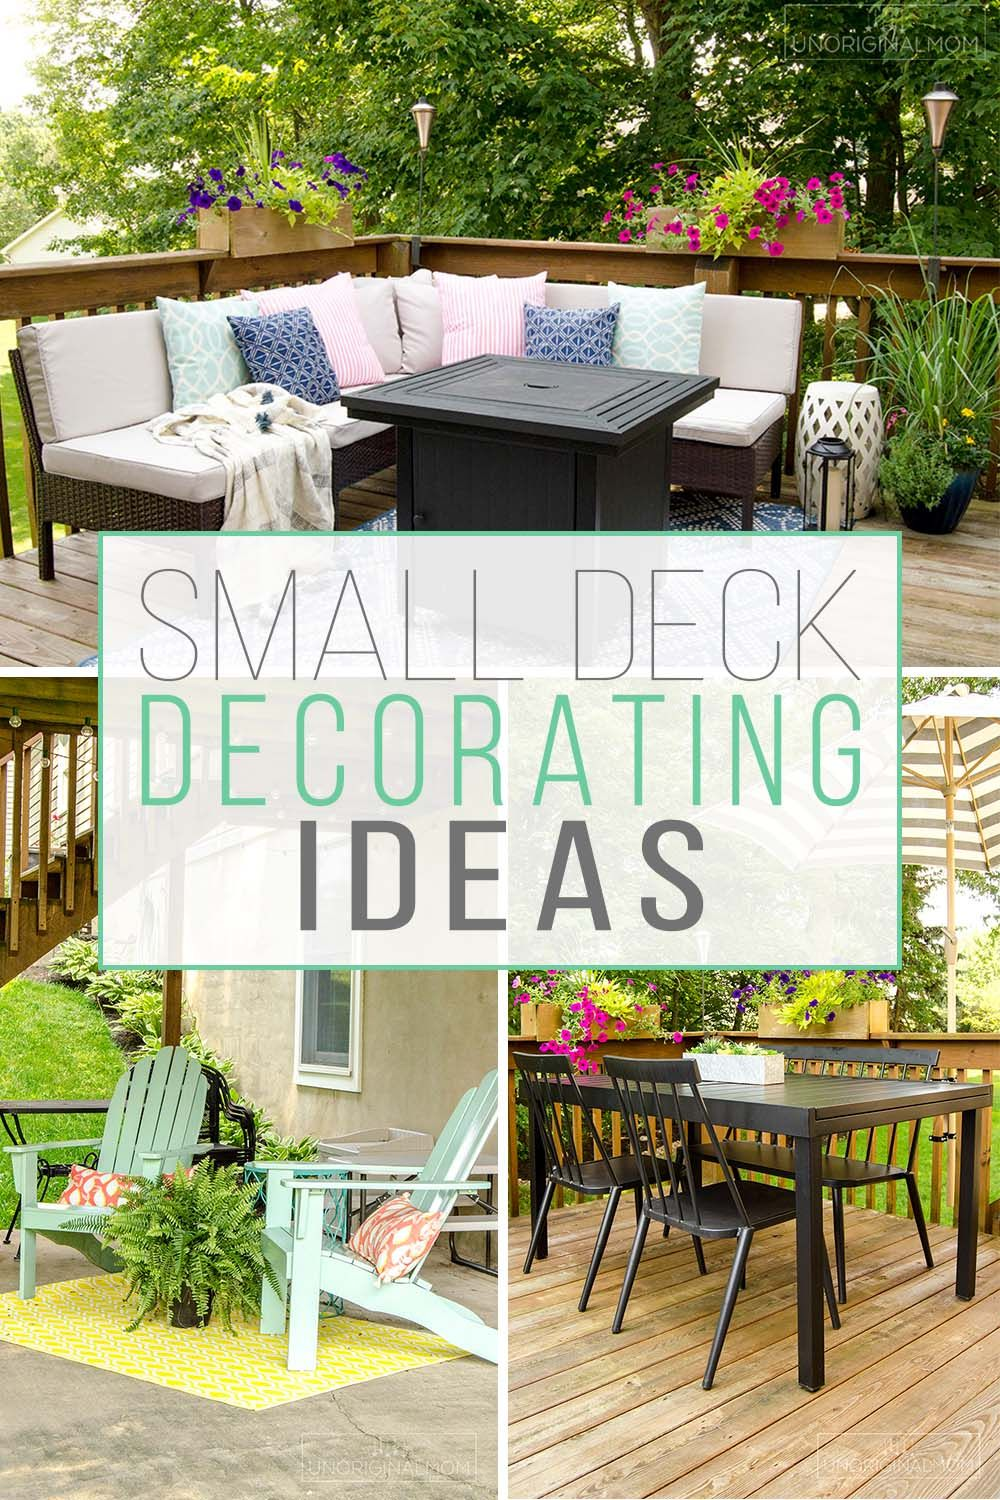 Small Deck Decorating Ideas Our Deck Tour Unoriginal Mom Small Deck Decorating Ideas Deck Decorating Ideas On A Budget Small Backyard Decks